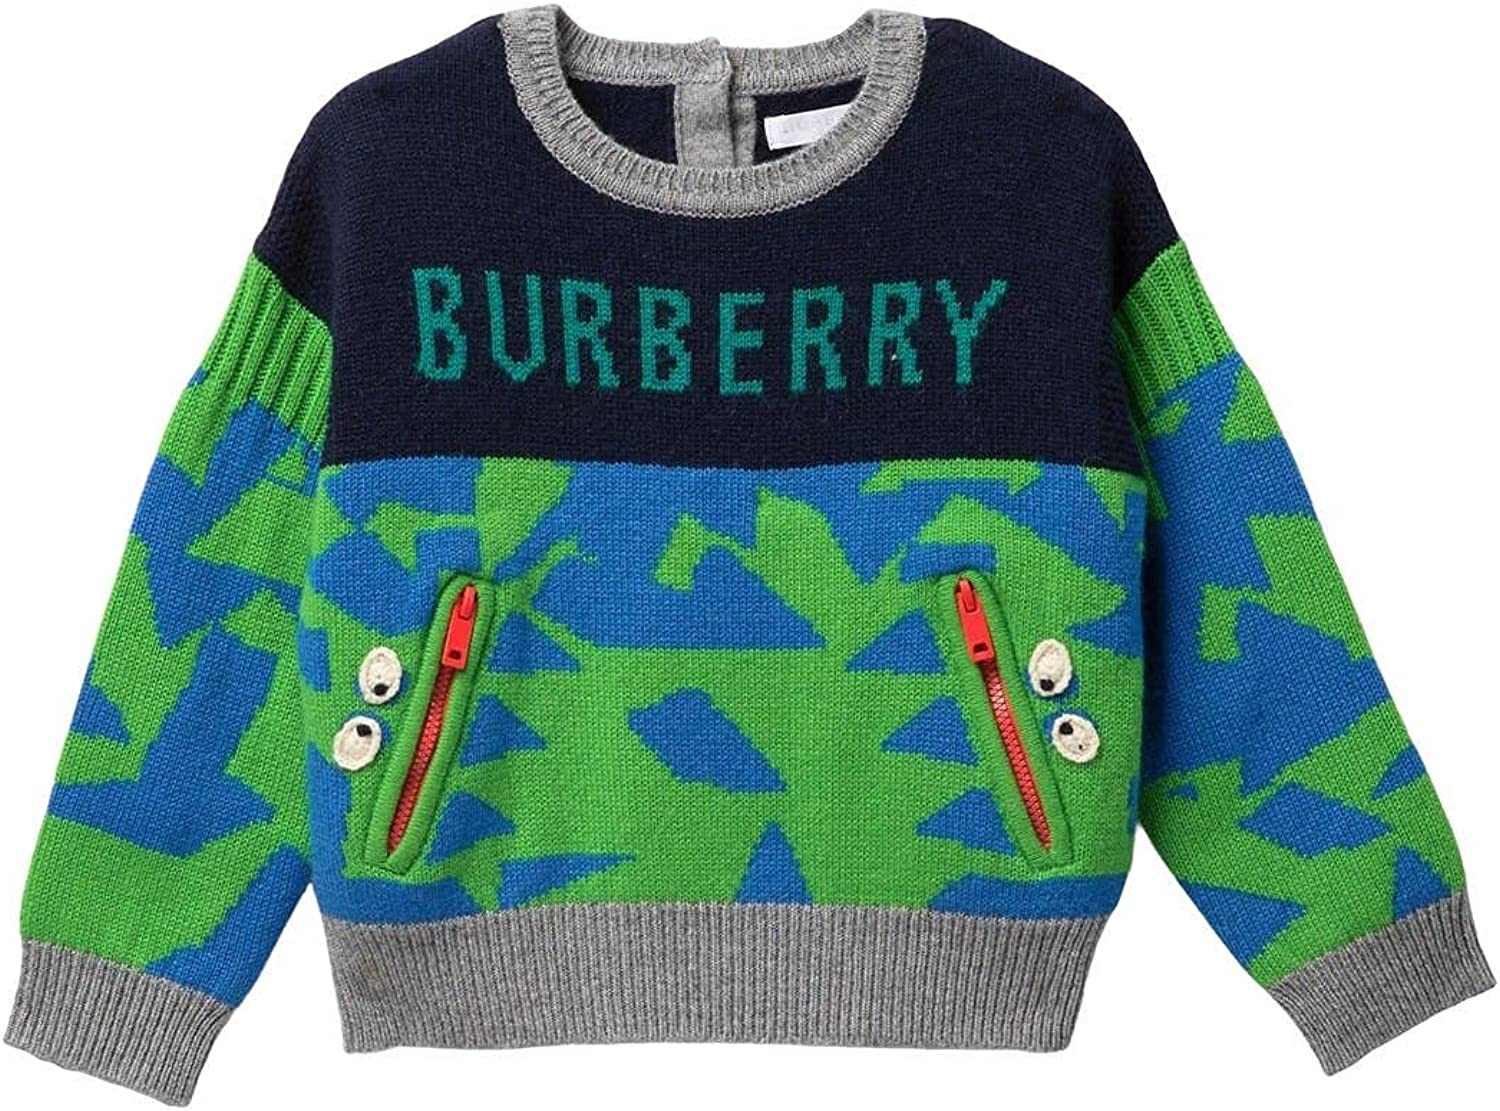 Burberry Boys Dawn Logo Monster Sweater, Brand Size 3Y Youths/Junior